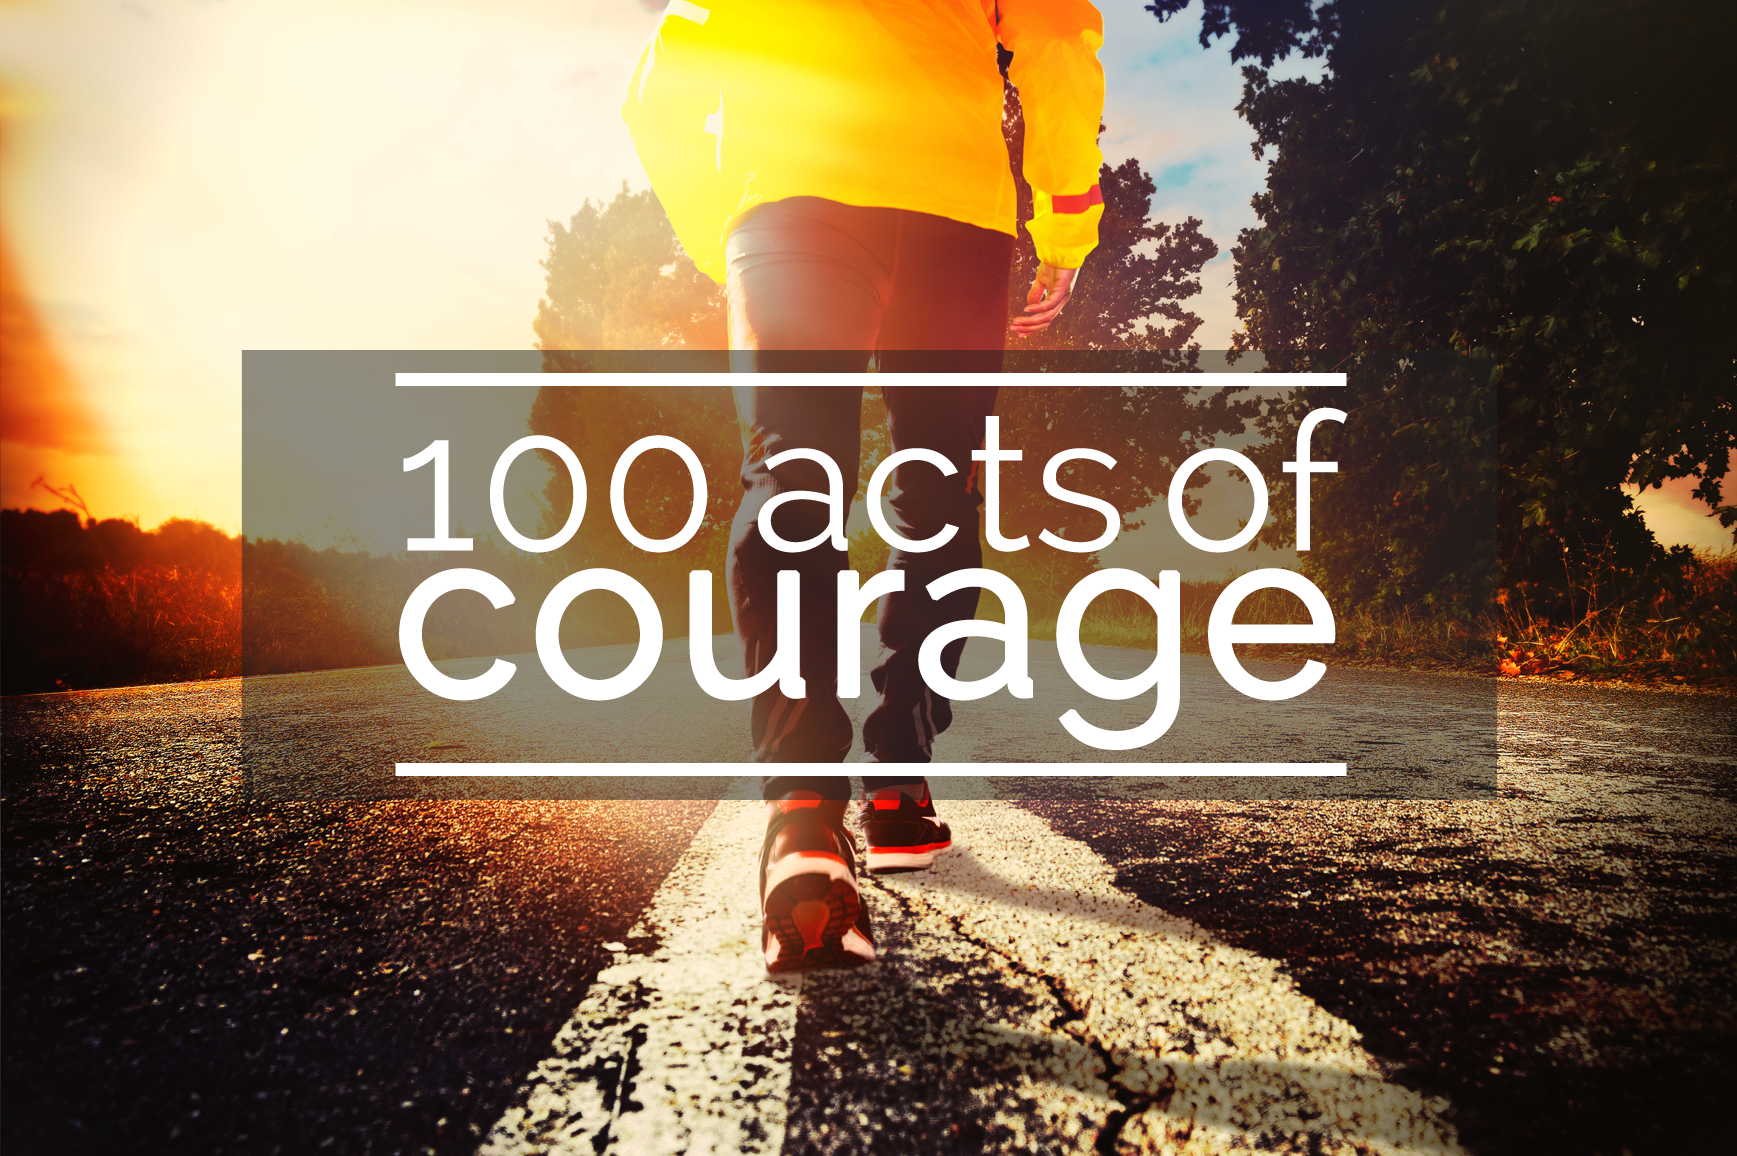 100 acts of courage